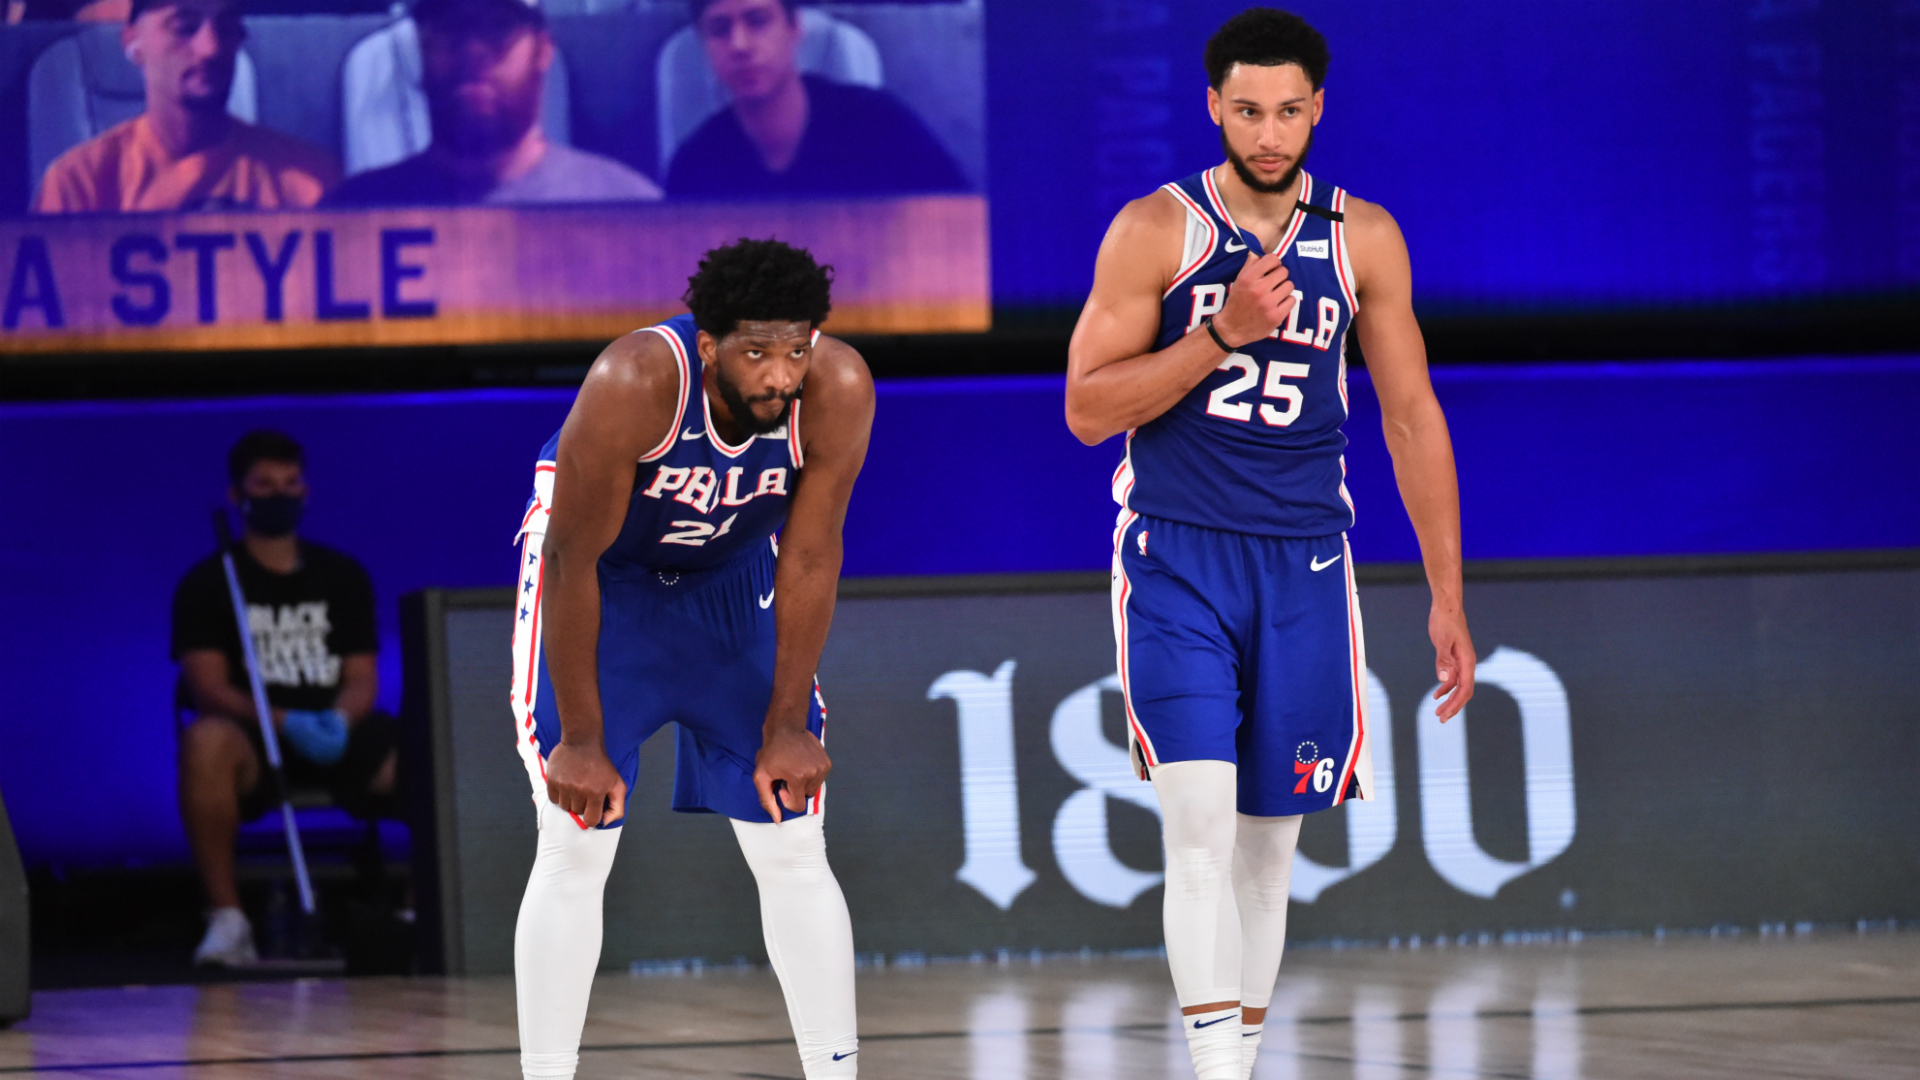 Trust the Process? Embiid? Simmons? – the issues facing 76ers and new coach in STATS data